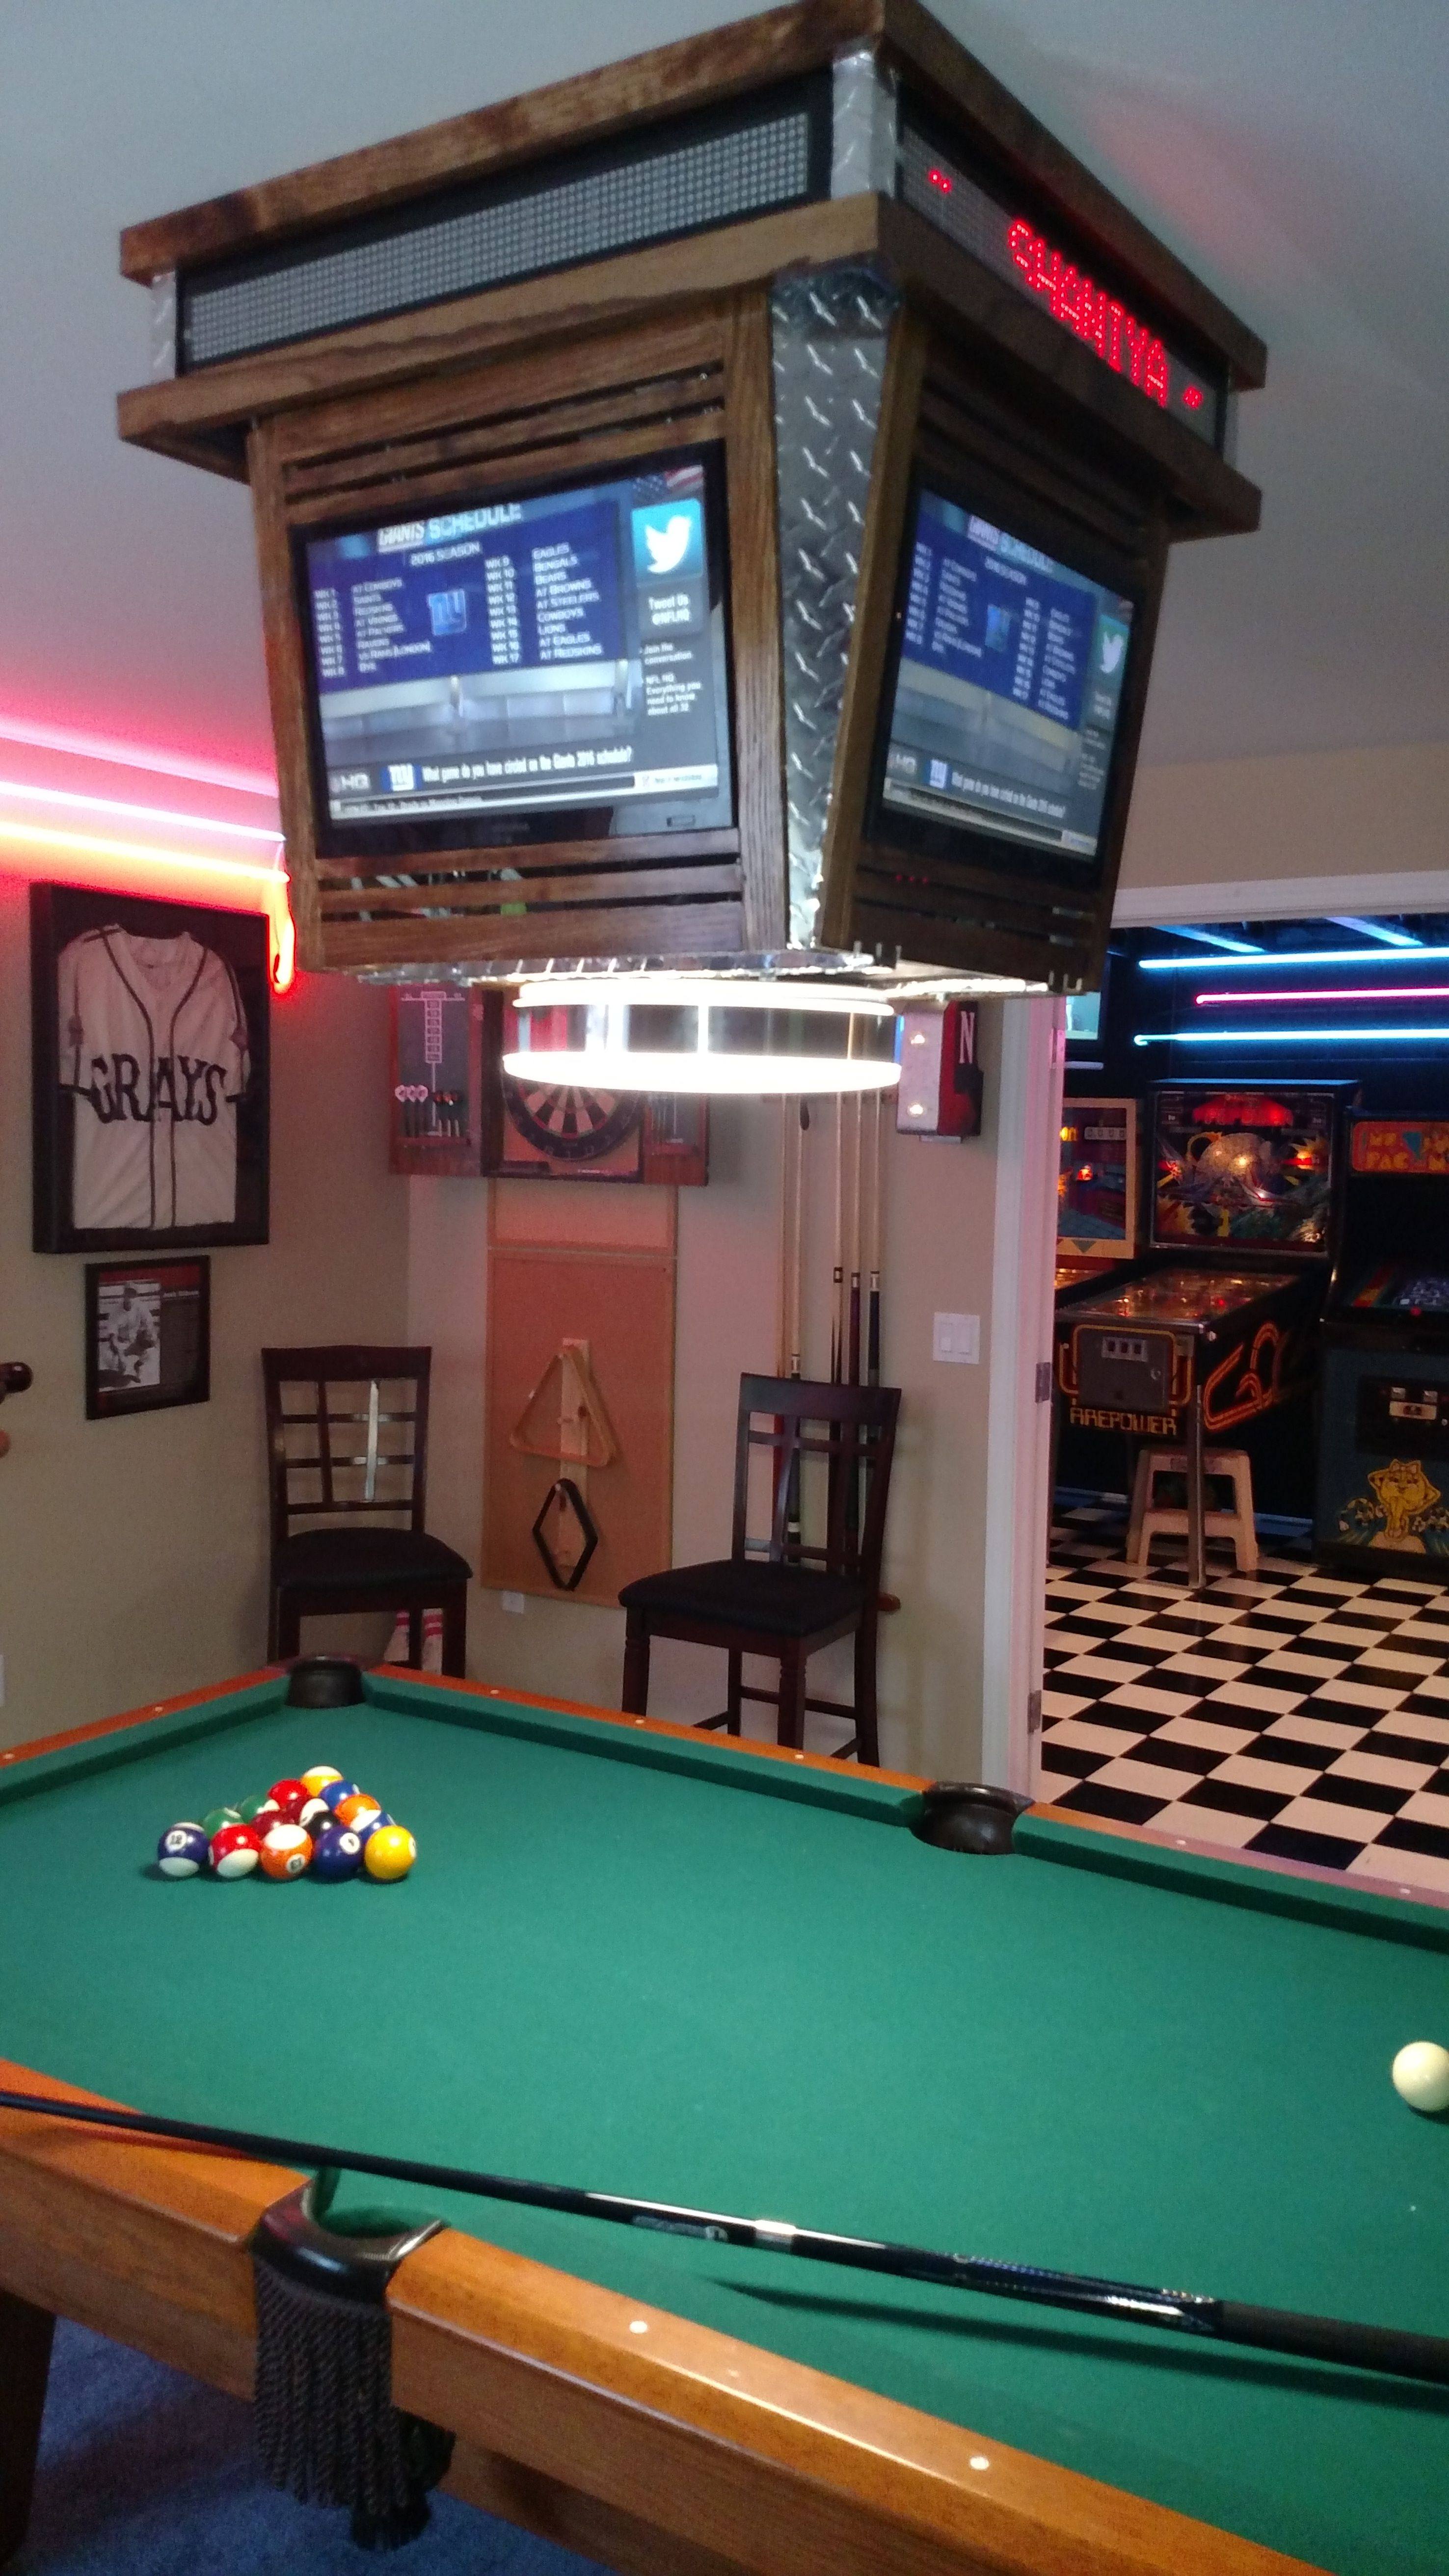 Pool table score board light with ultimate neon lit